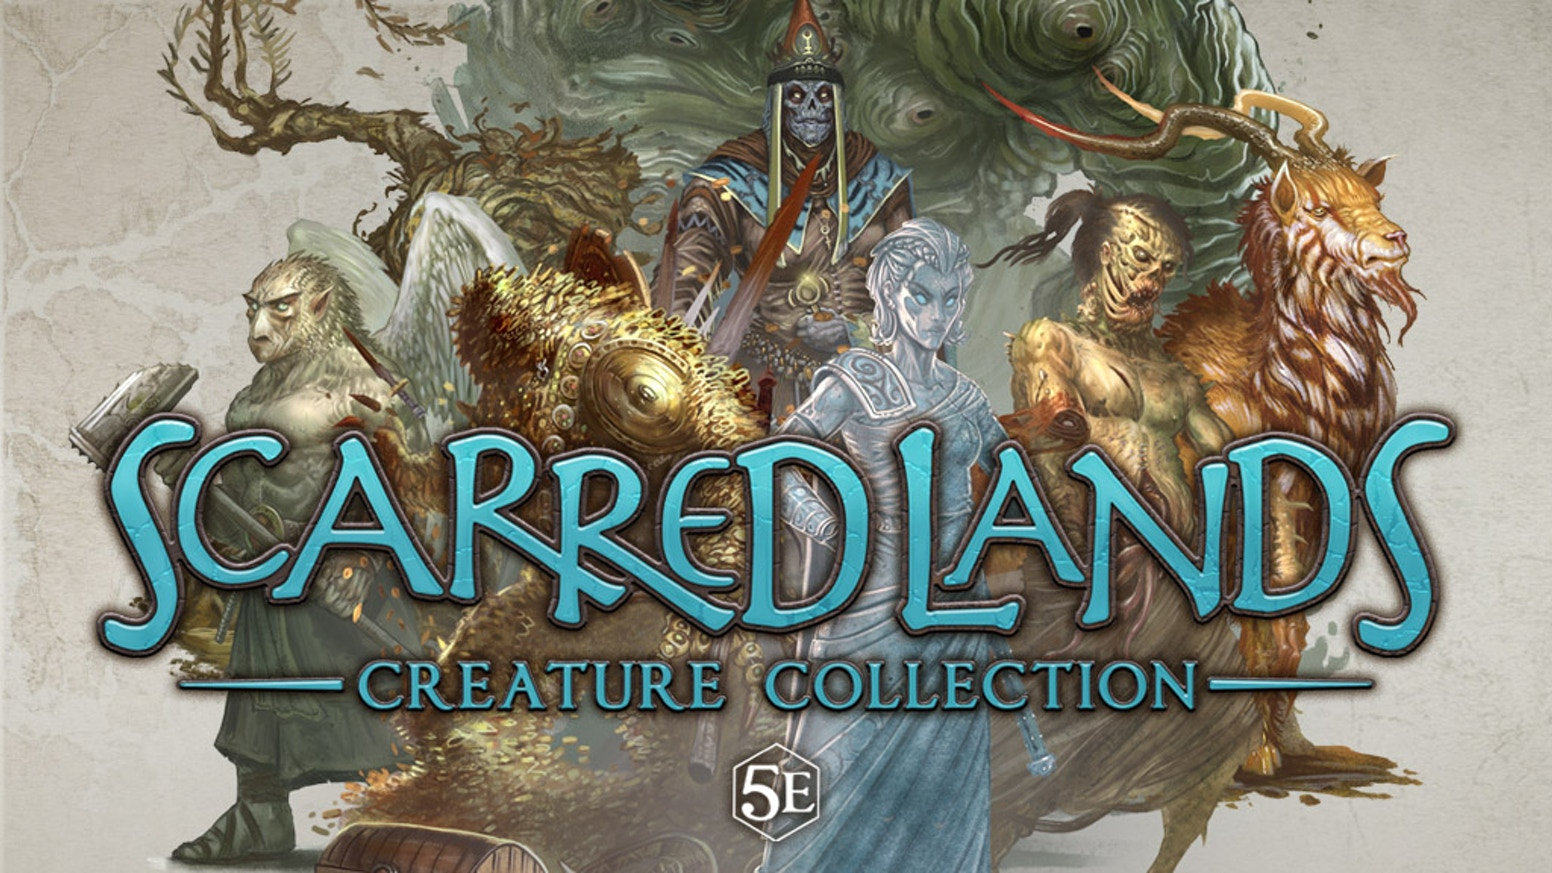 Scarred Lands Creature Collection for 5th Edition RPG.jpg